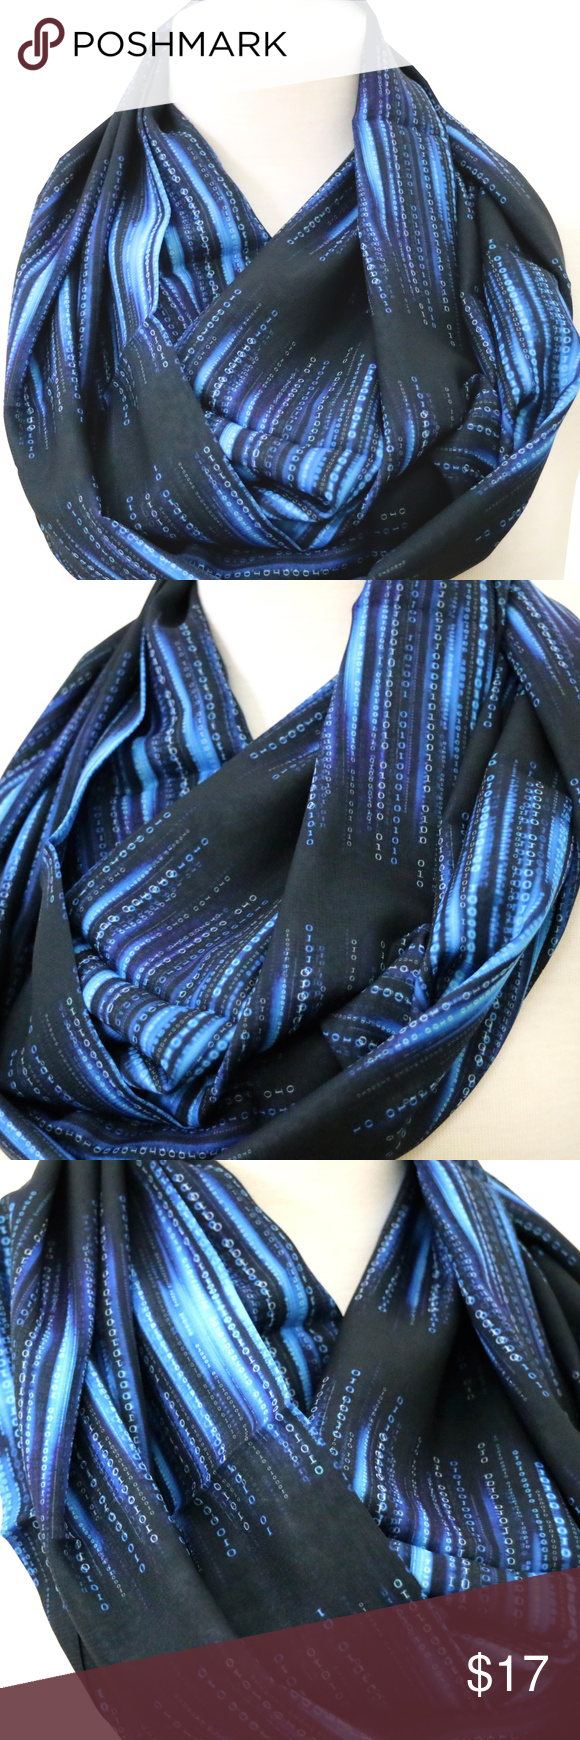 B78 Metallic Sequin Raw Edge Black Gauze Texture Long Shawl Scarf Boutique